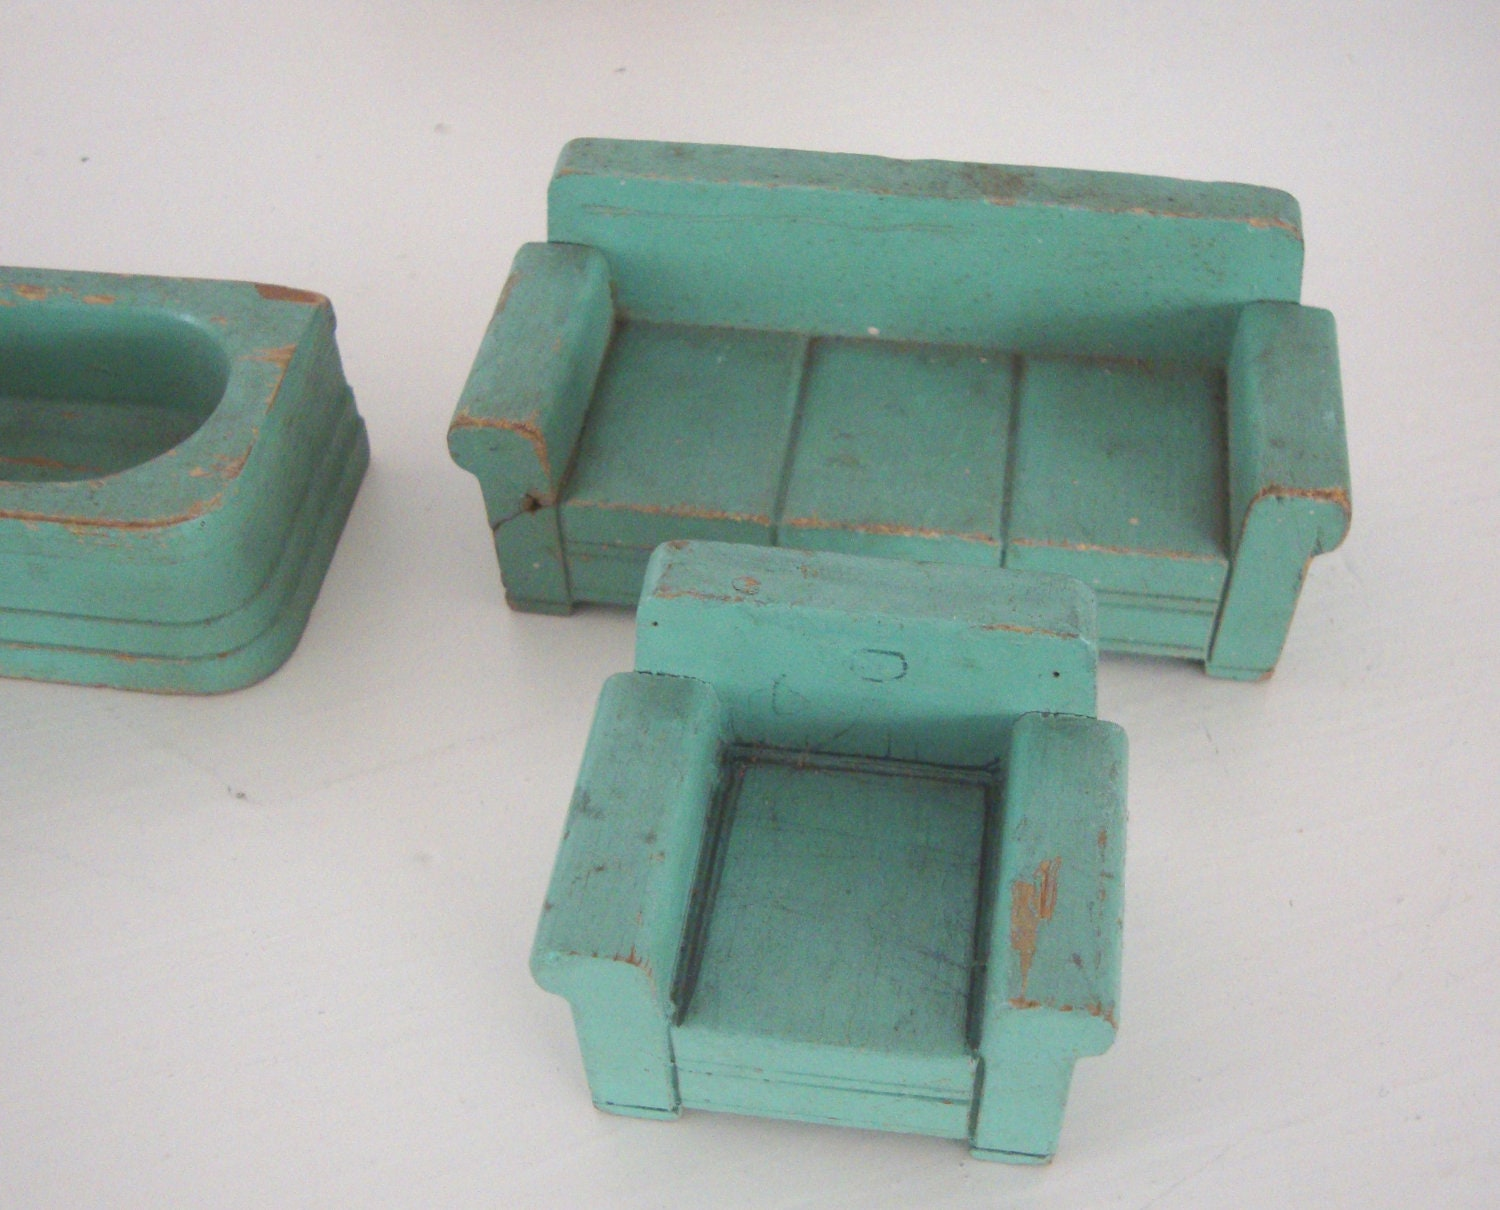 Aqua Dollhouse Furniture Vintage Wood Wooden By Iwantvintage